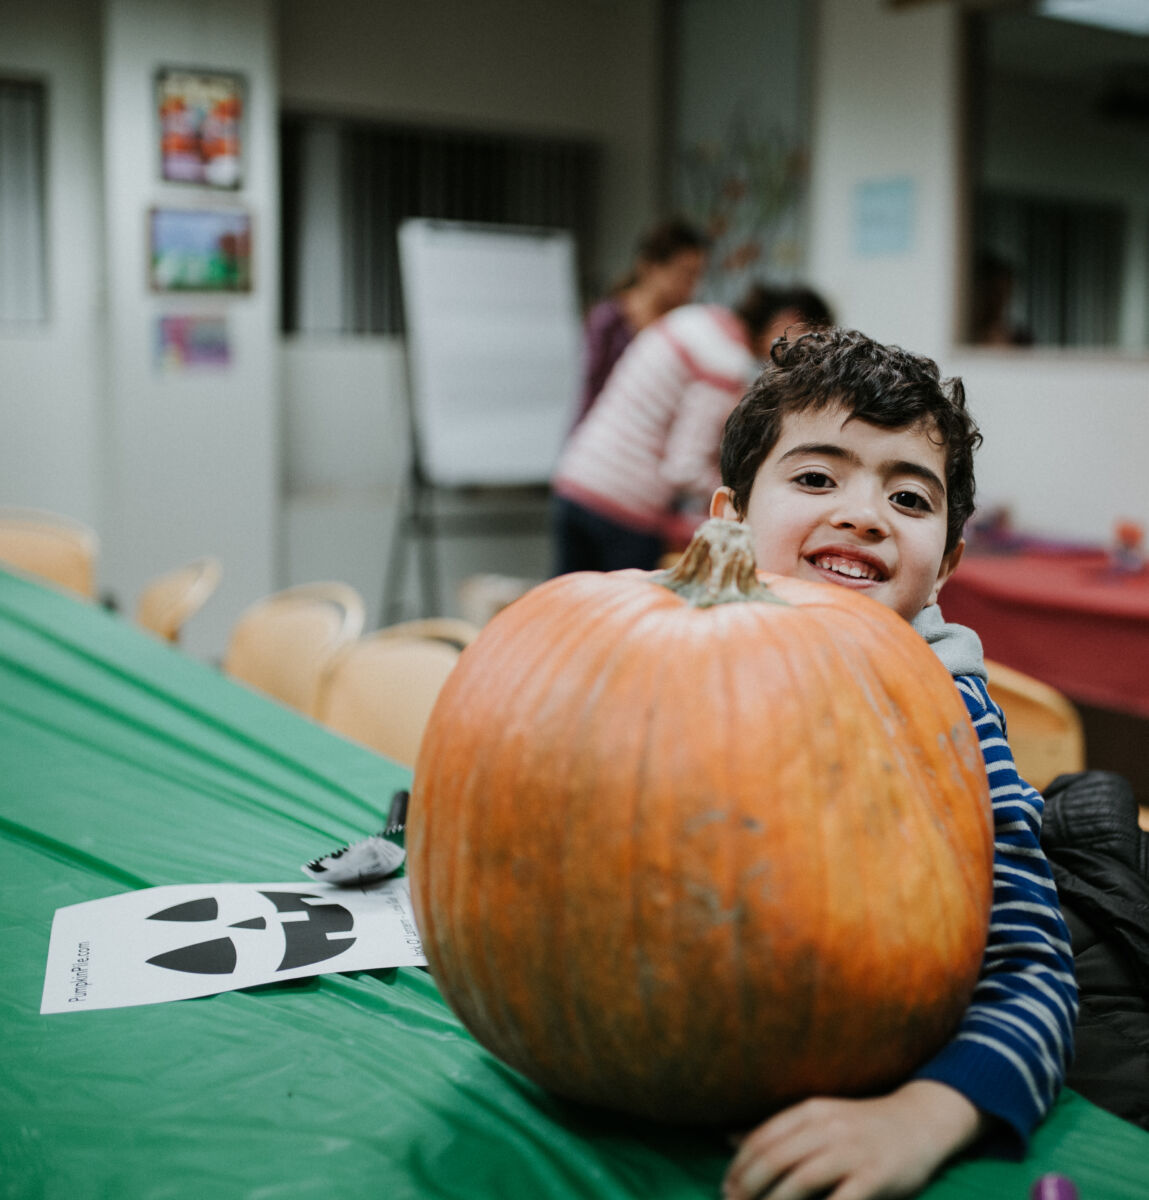 Young boy poses with large pumpkin